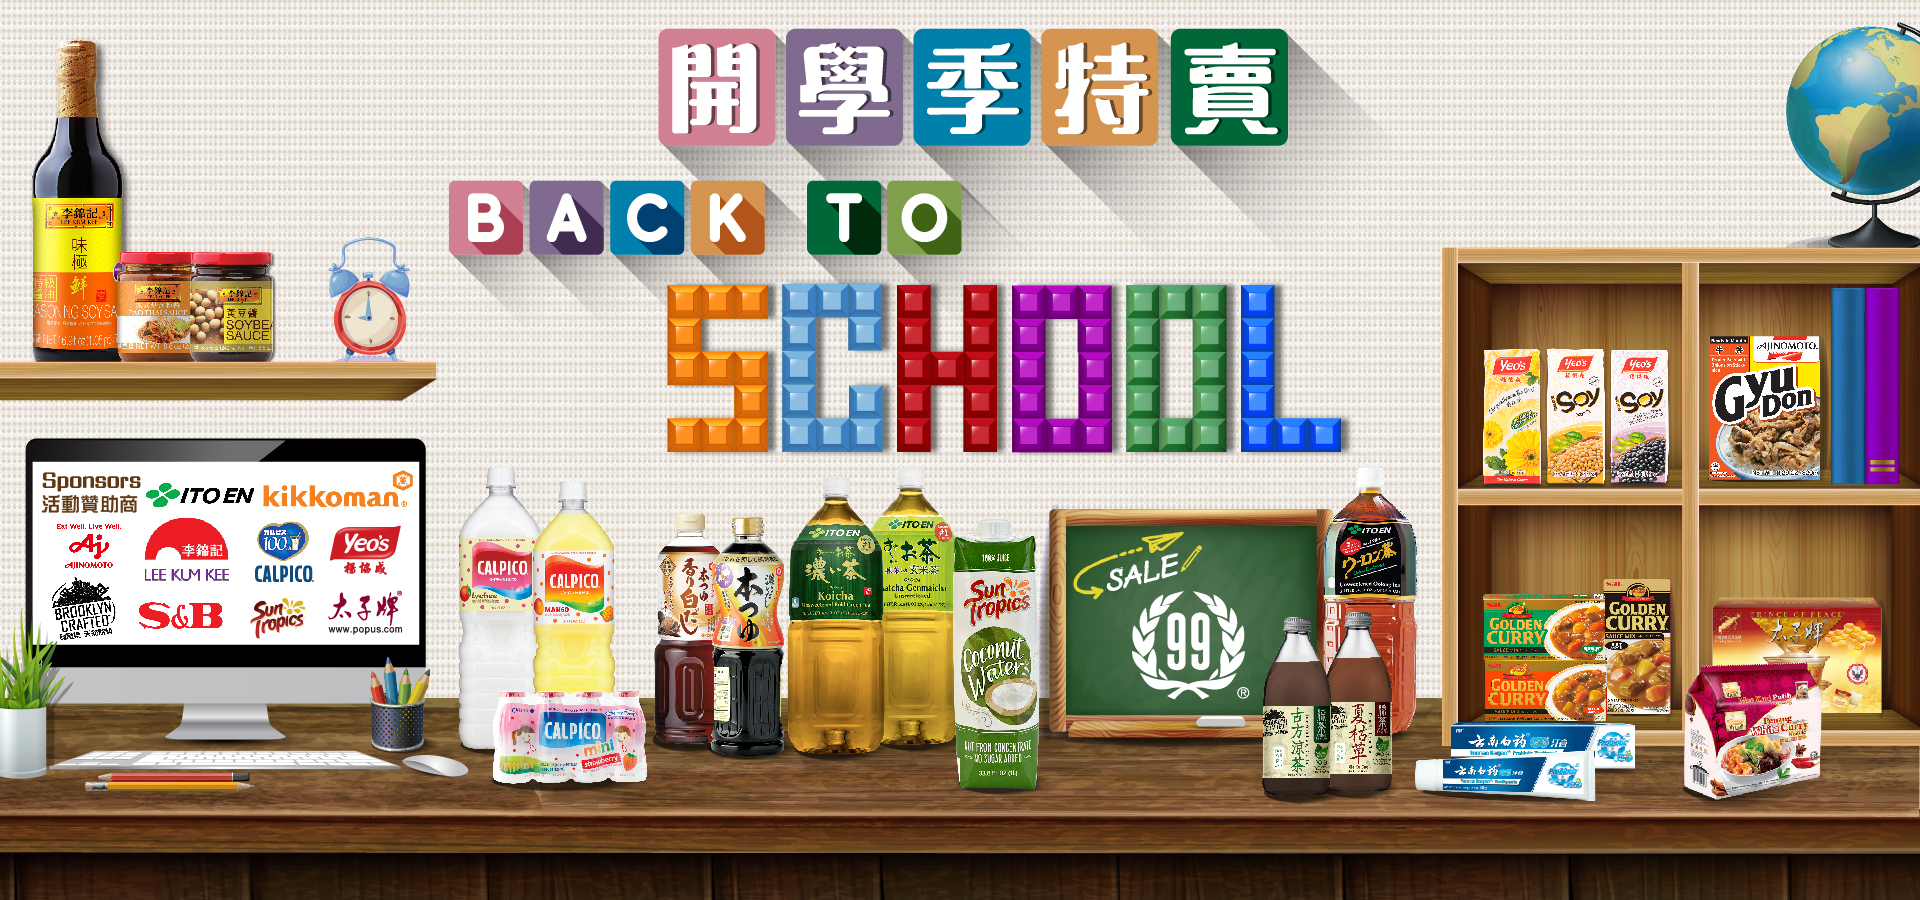 2019 back to school 1920 x 900 HP Banner-01